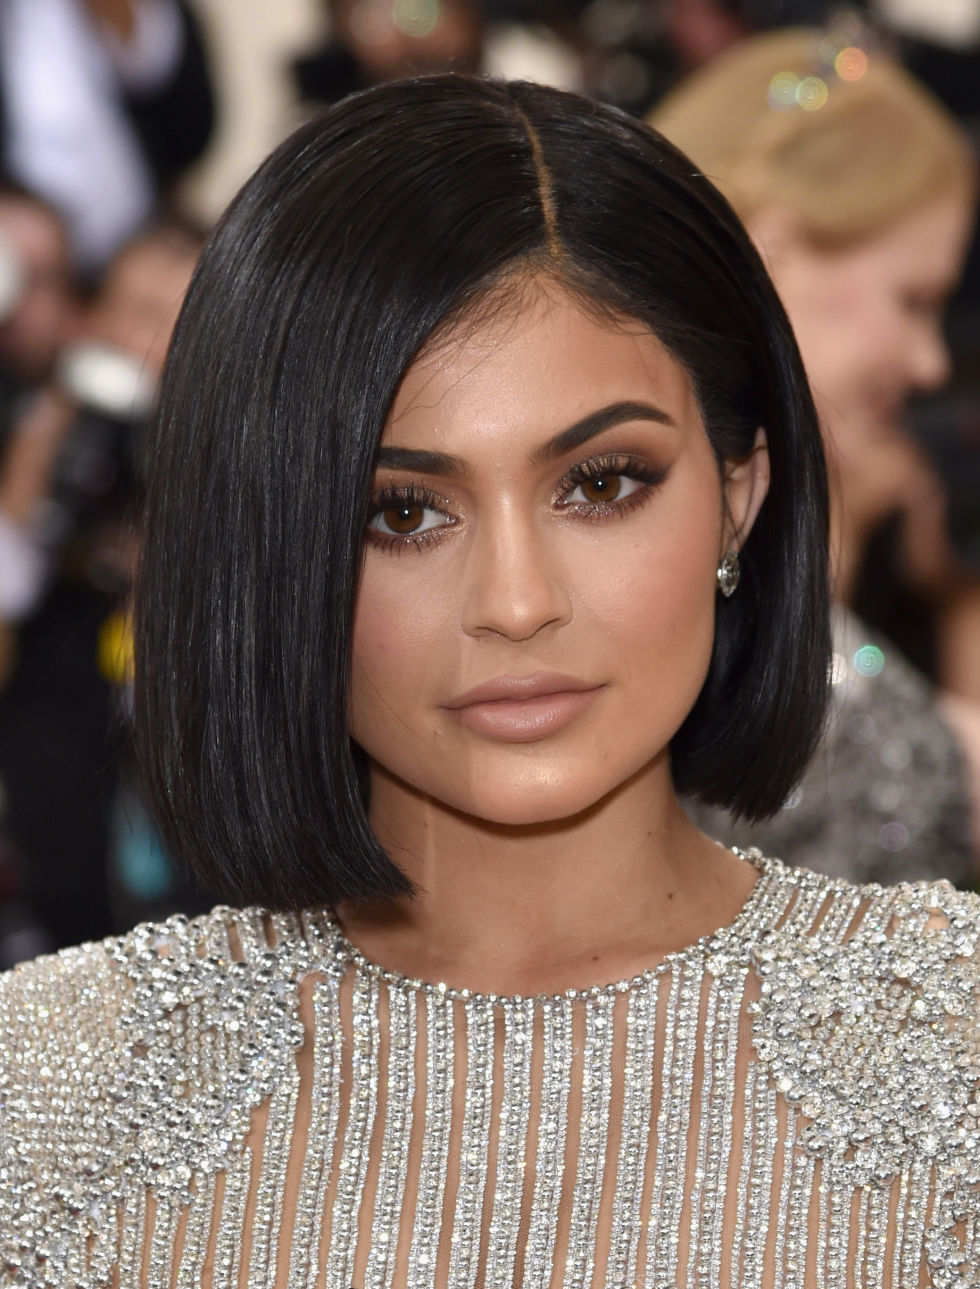 55 best short hairstyles, haircuts, and short hair ideas for 2017